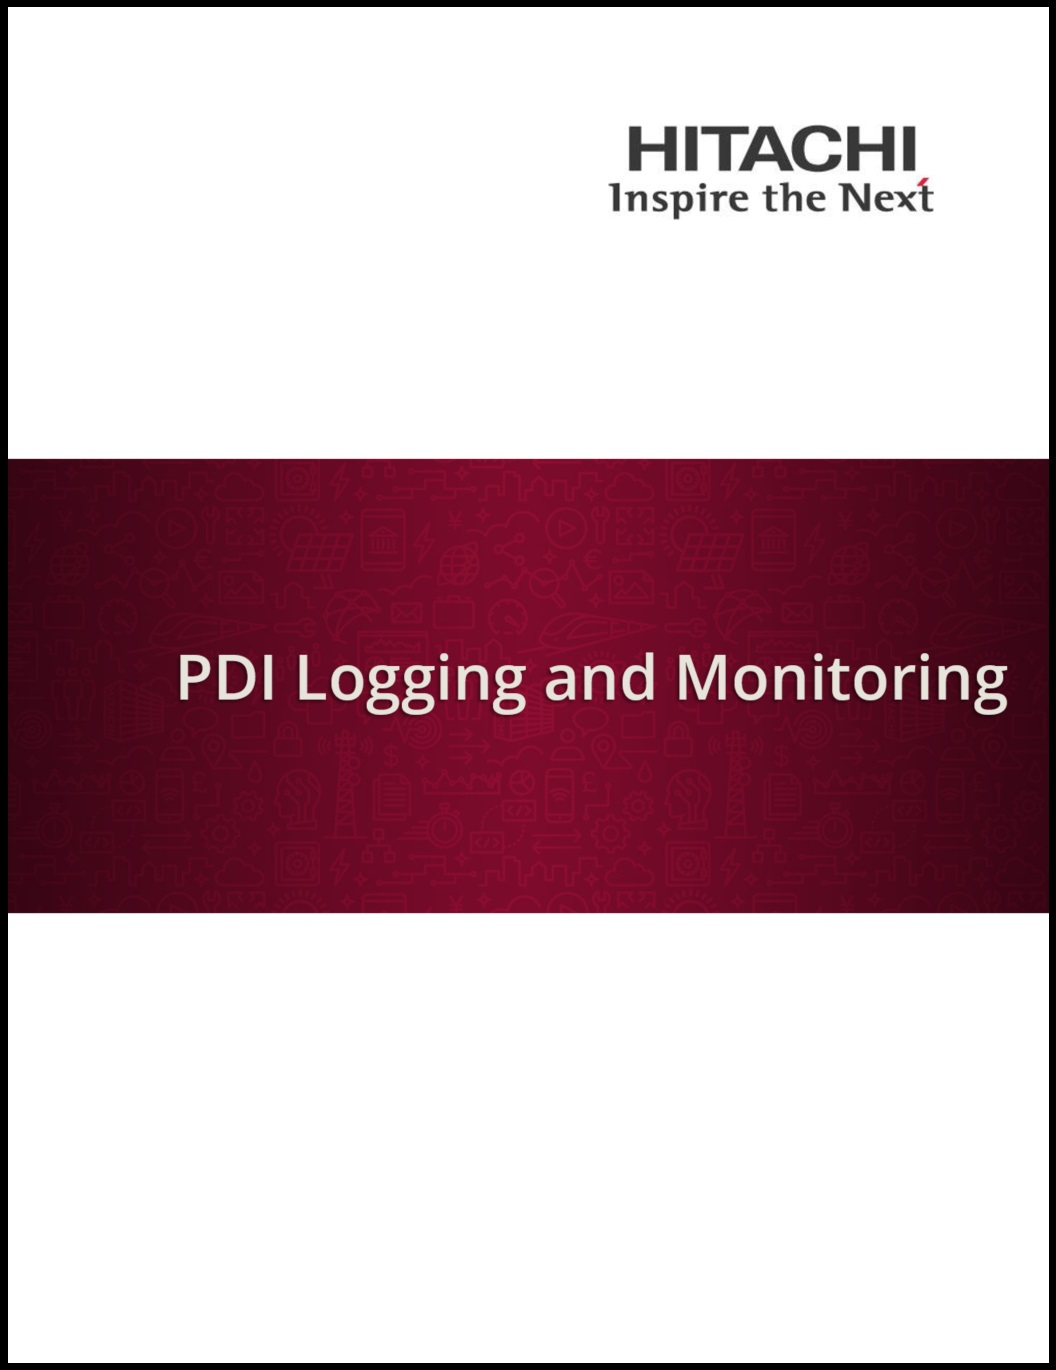 PDI_Logging_and_Monitoring_cover.jpg